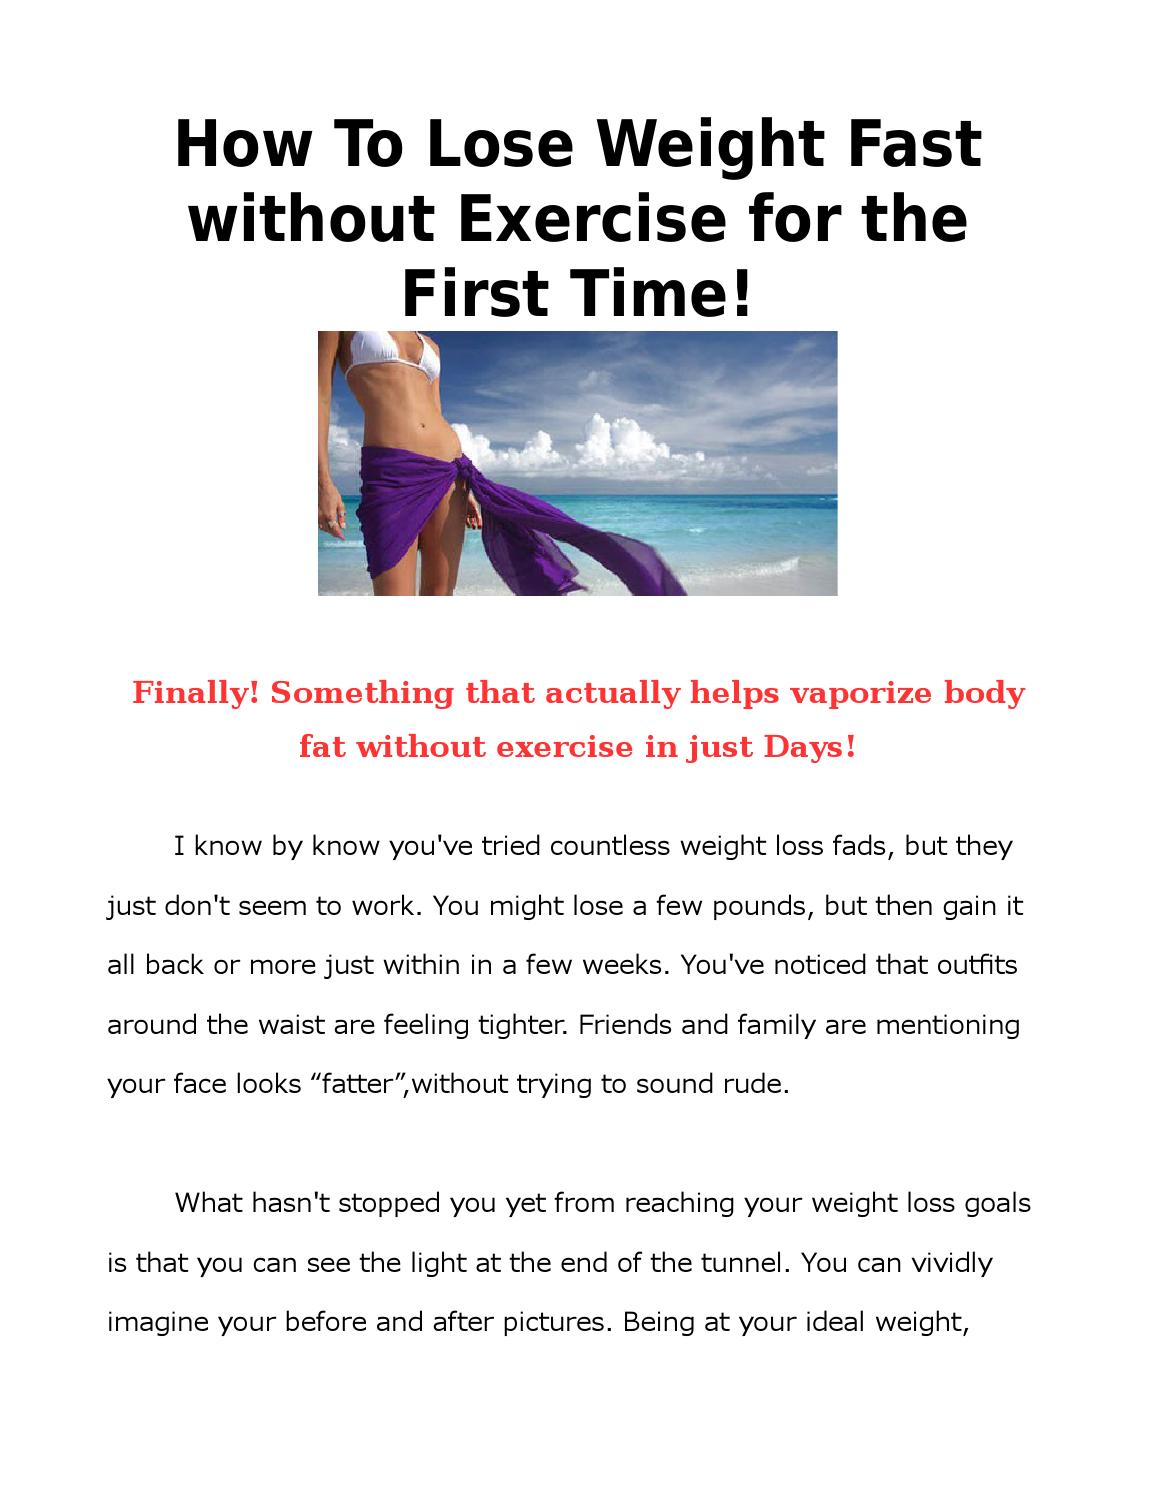 How To Lose Weight Without Exercise For The First Timehow To Lose Weight Without Exercise By Jacob Cruz Issuu